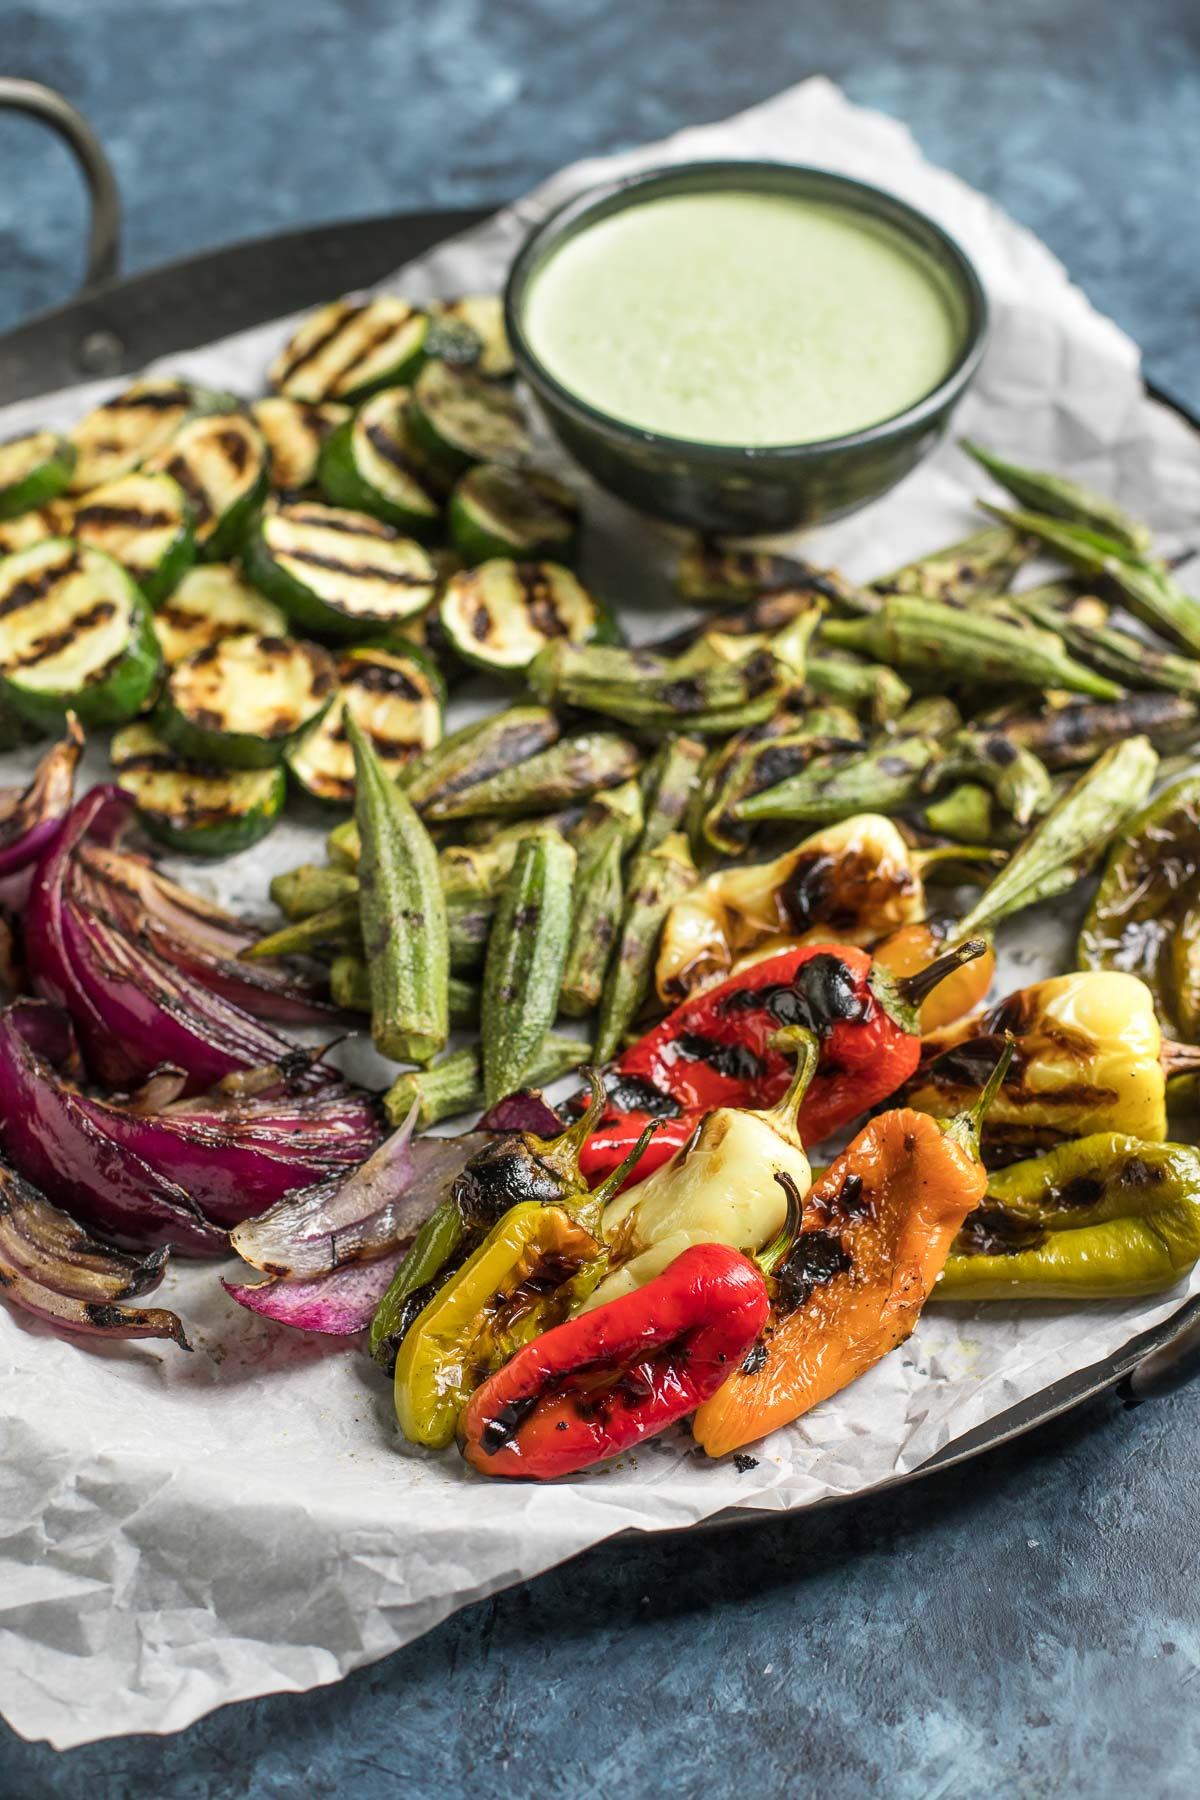 Grilled Vegetables with Jalapeño Aioli (Whole30, Vegetarian, Paleo)